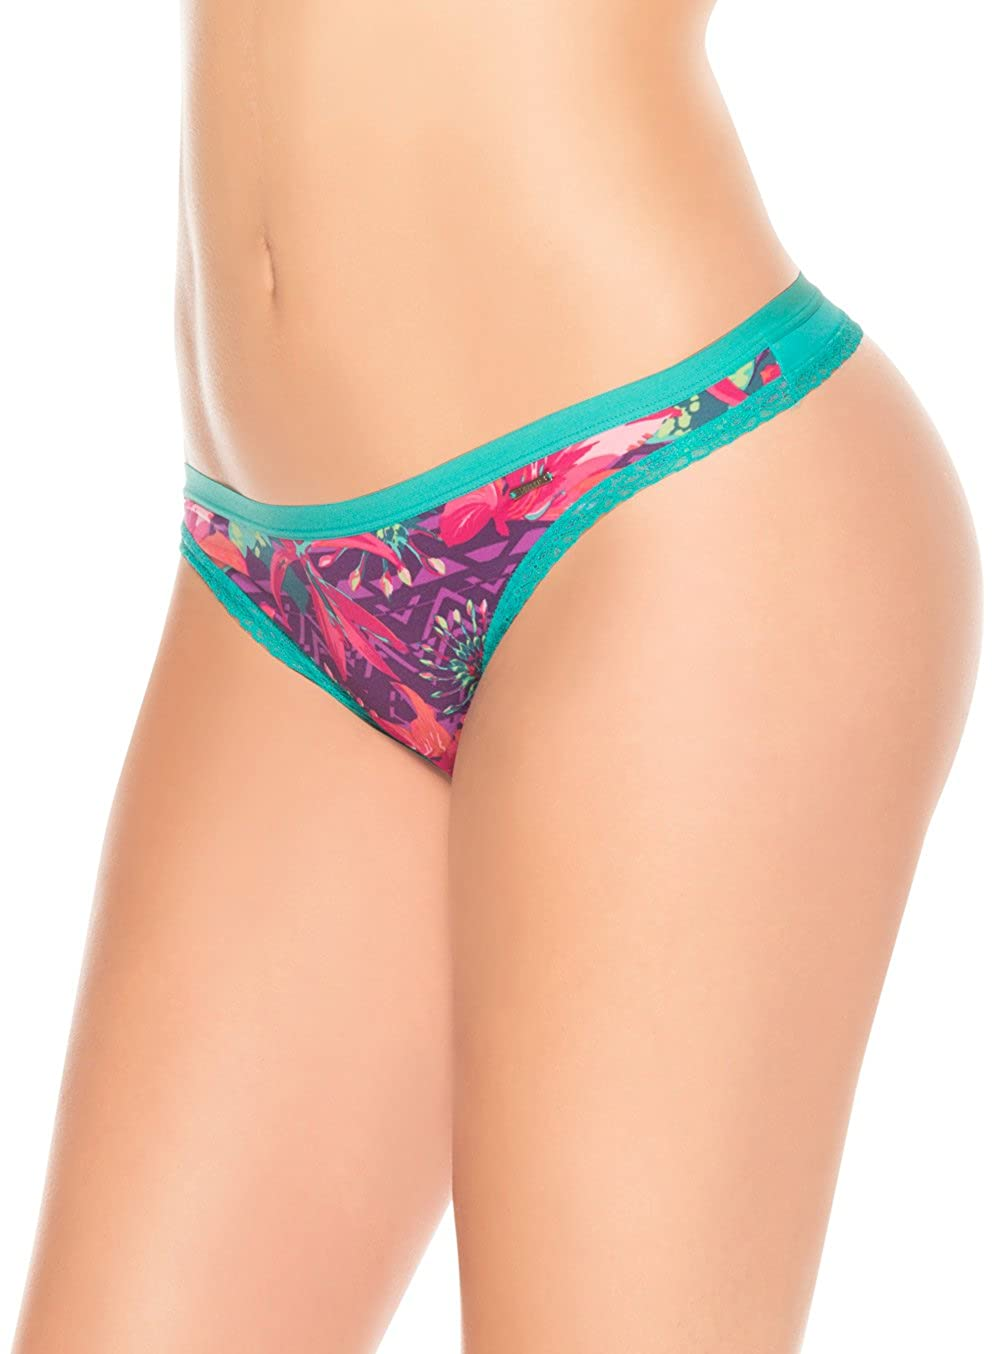 Laura Women's Thong Floral Fabric Lace Trim